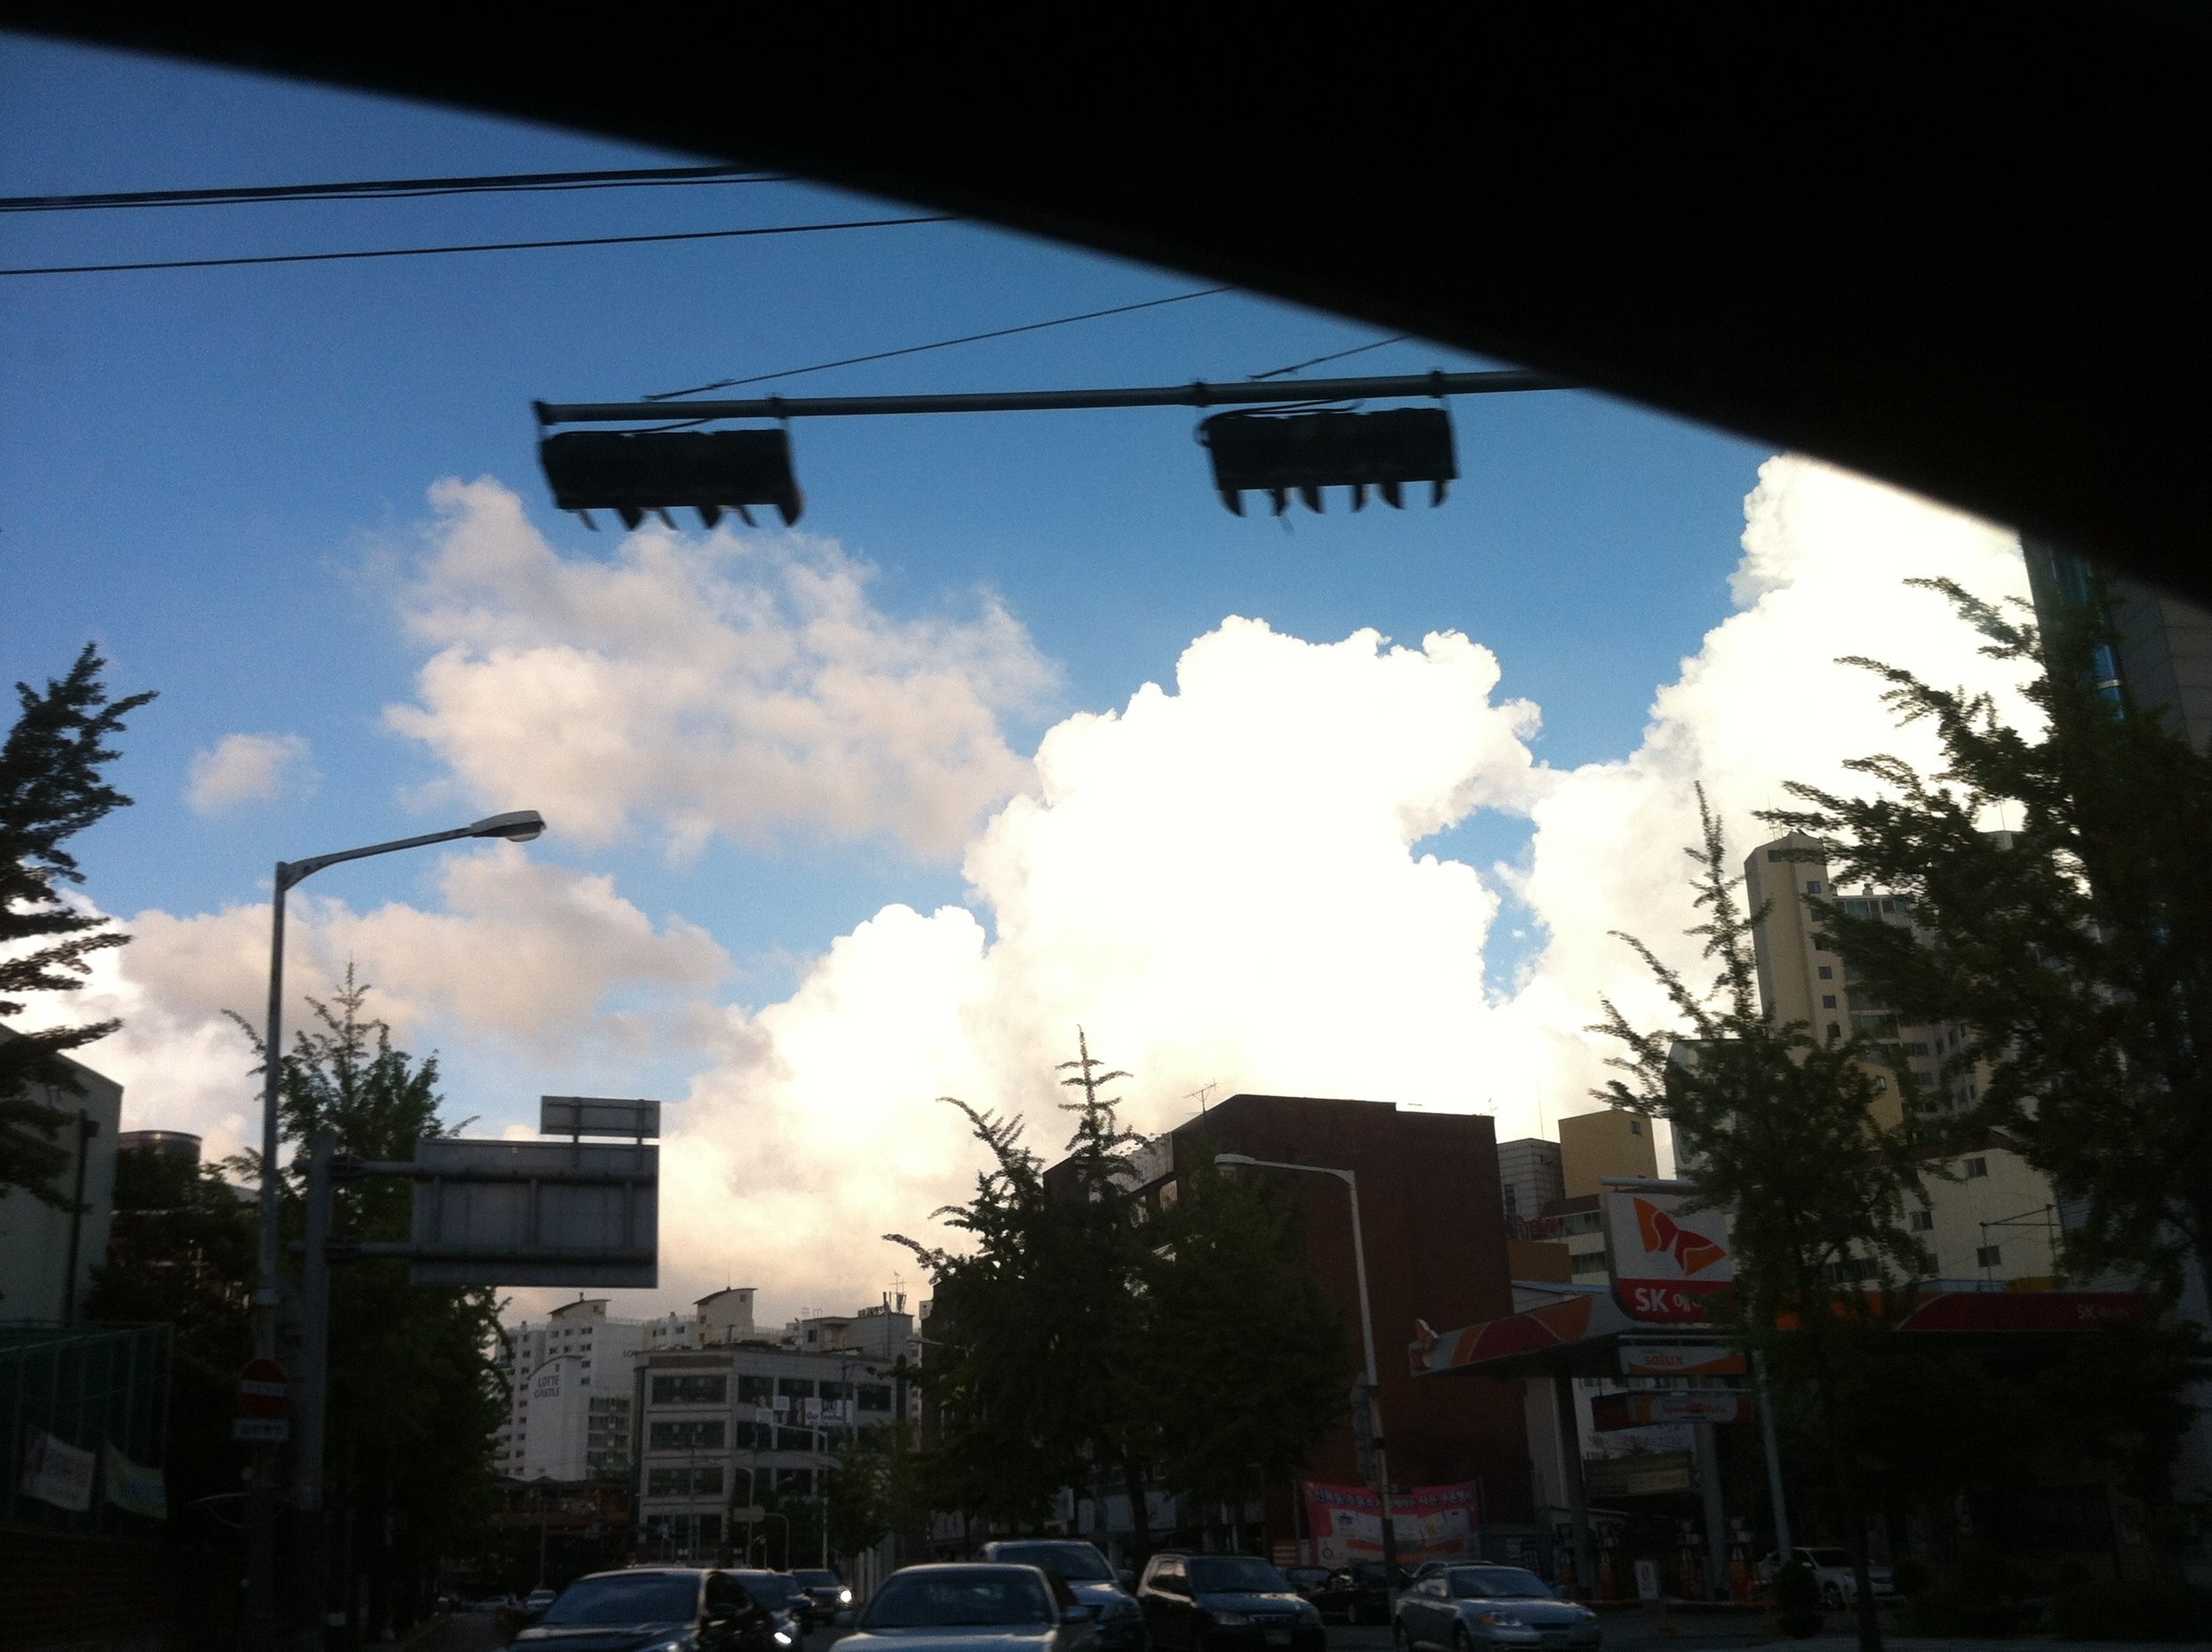 Seoul sky, from inside the taxi.